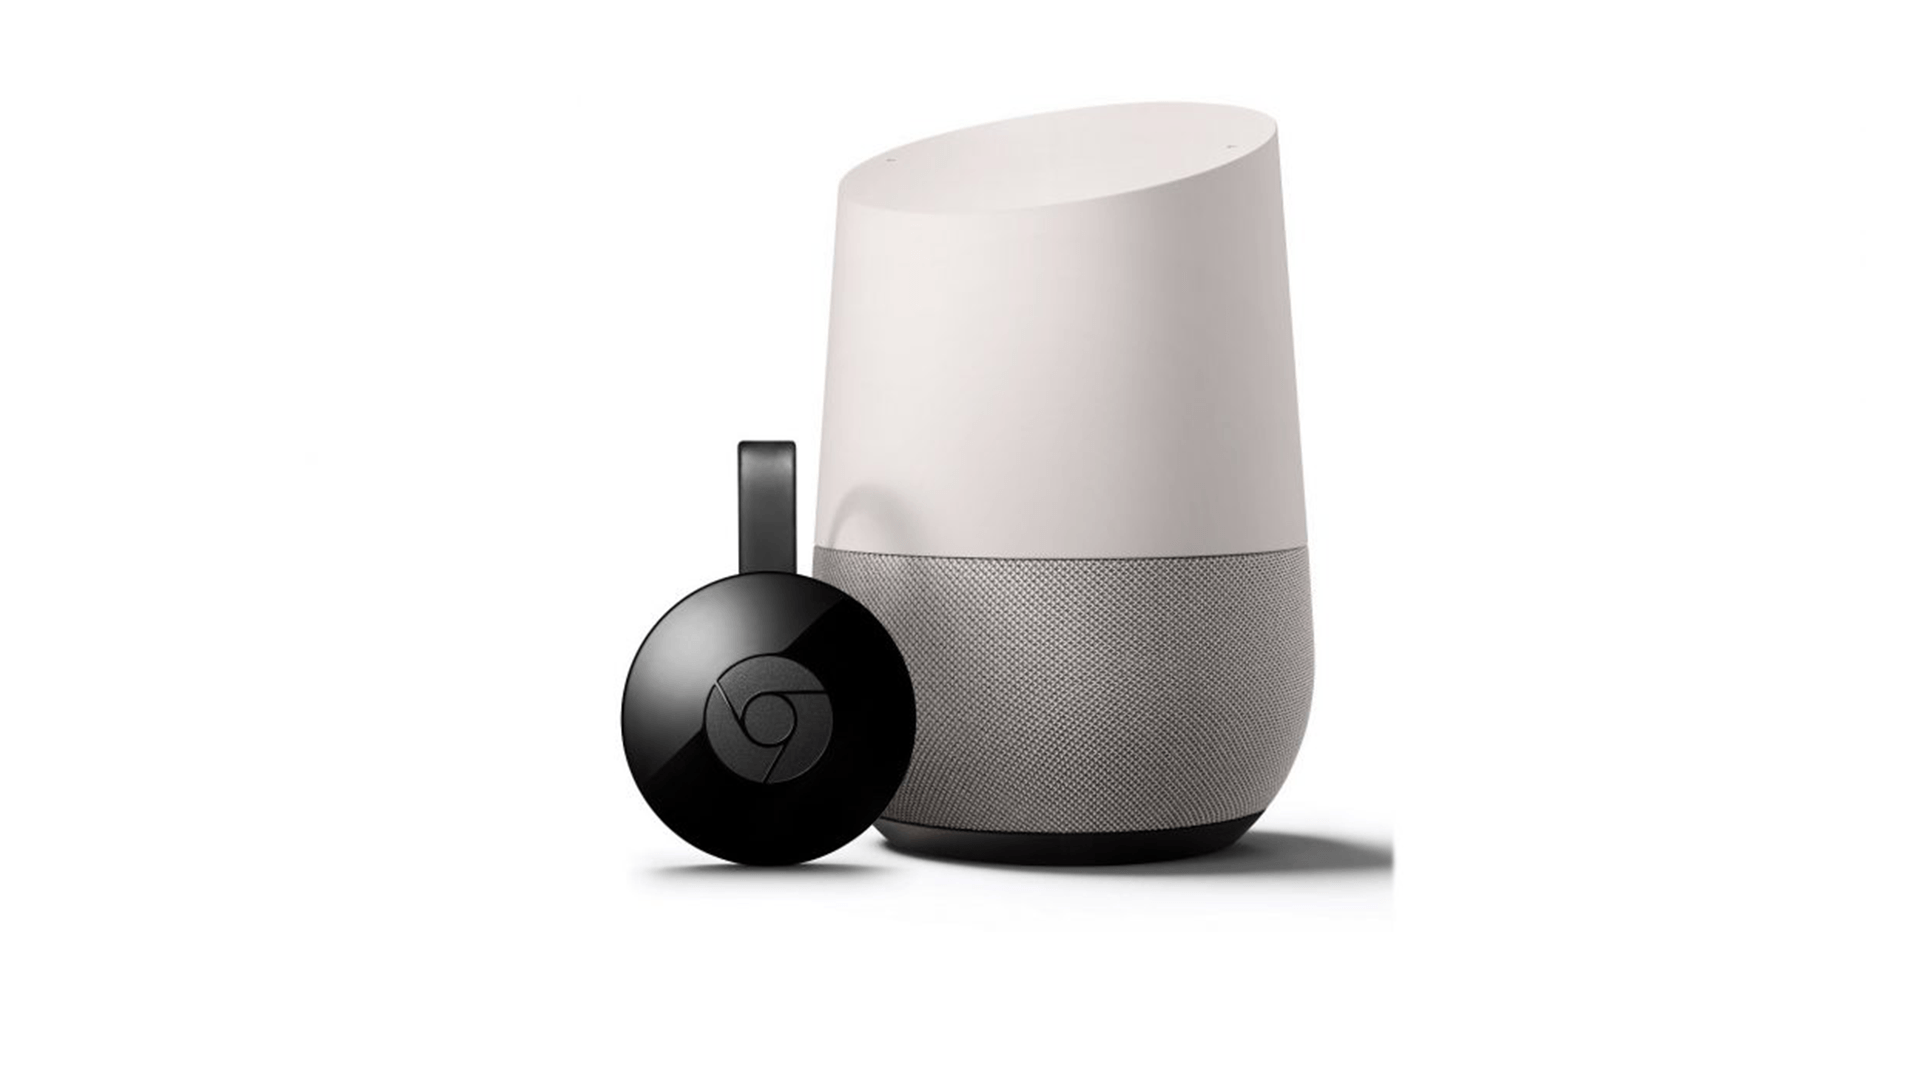 le bon plan du jour le google home chromecast 2 est 149 euros chez darty tech numerama. Black Bedroom Furniture Sets. Home Design Ideas